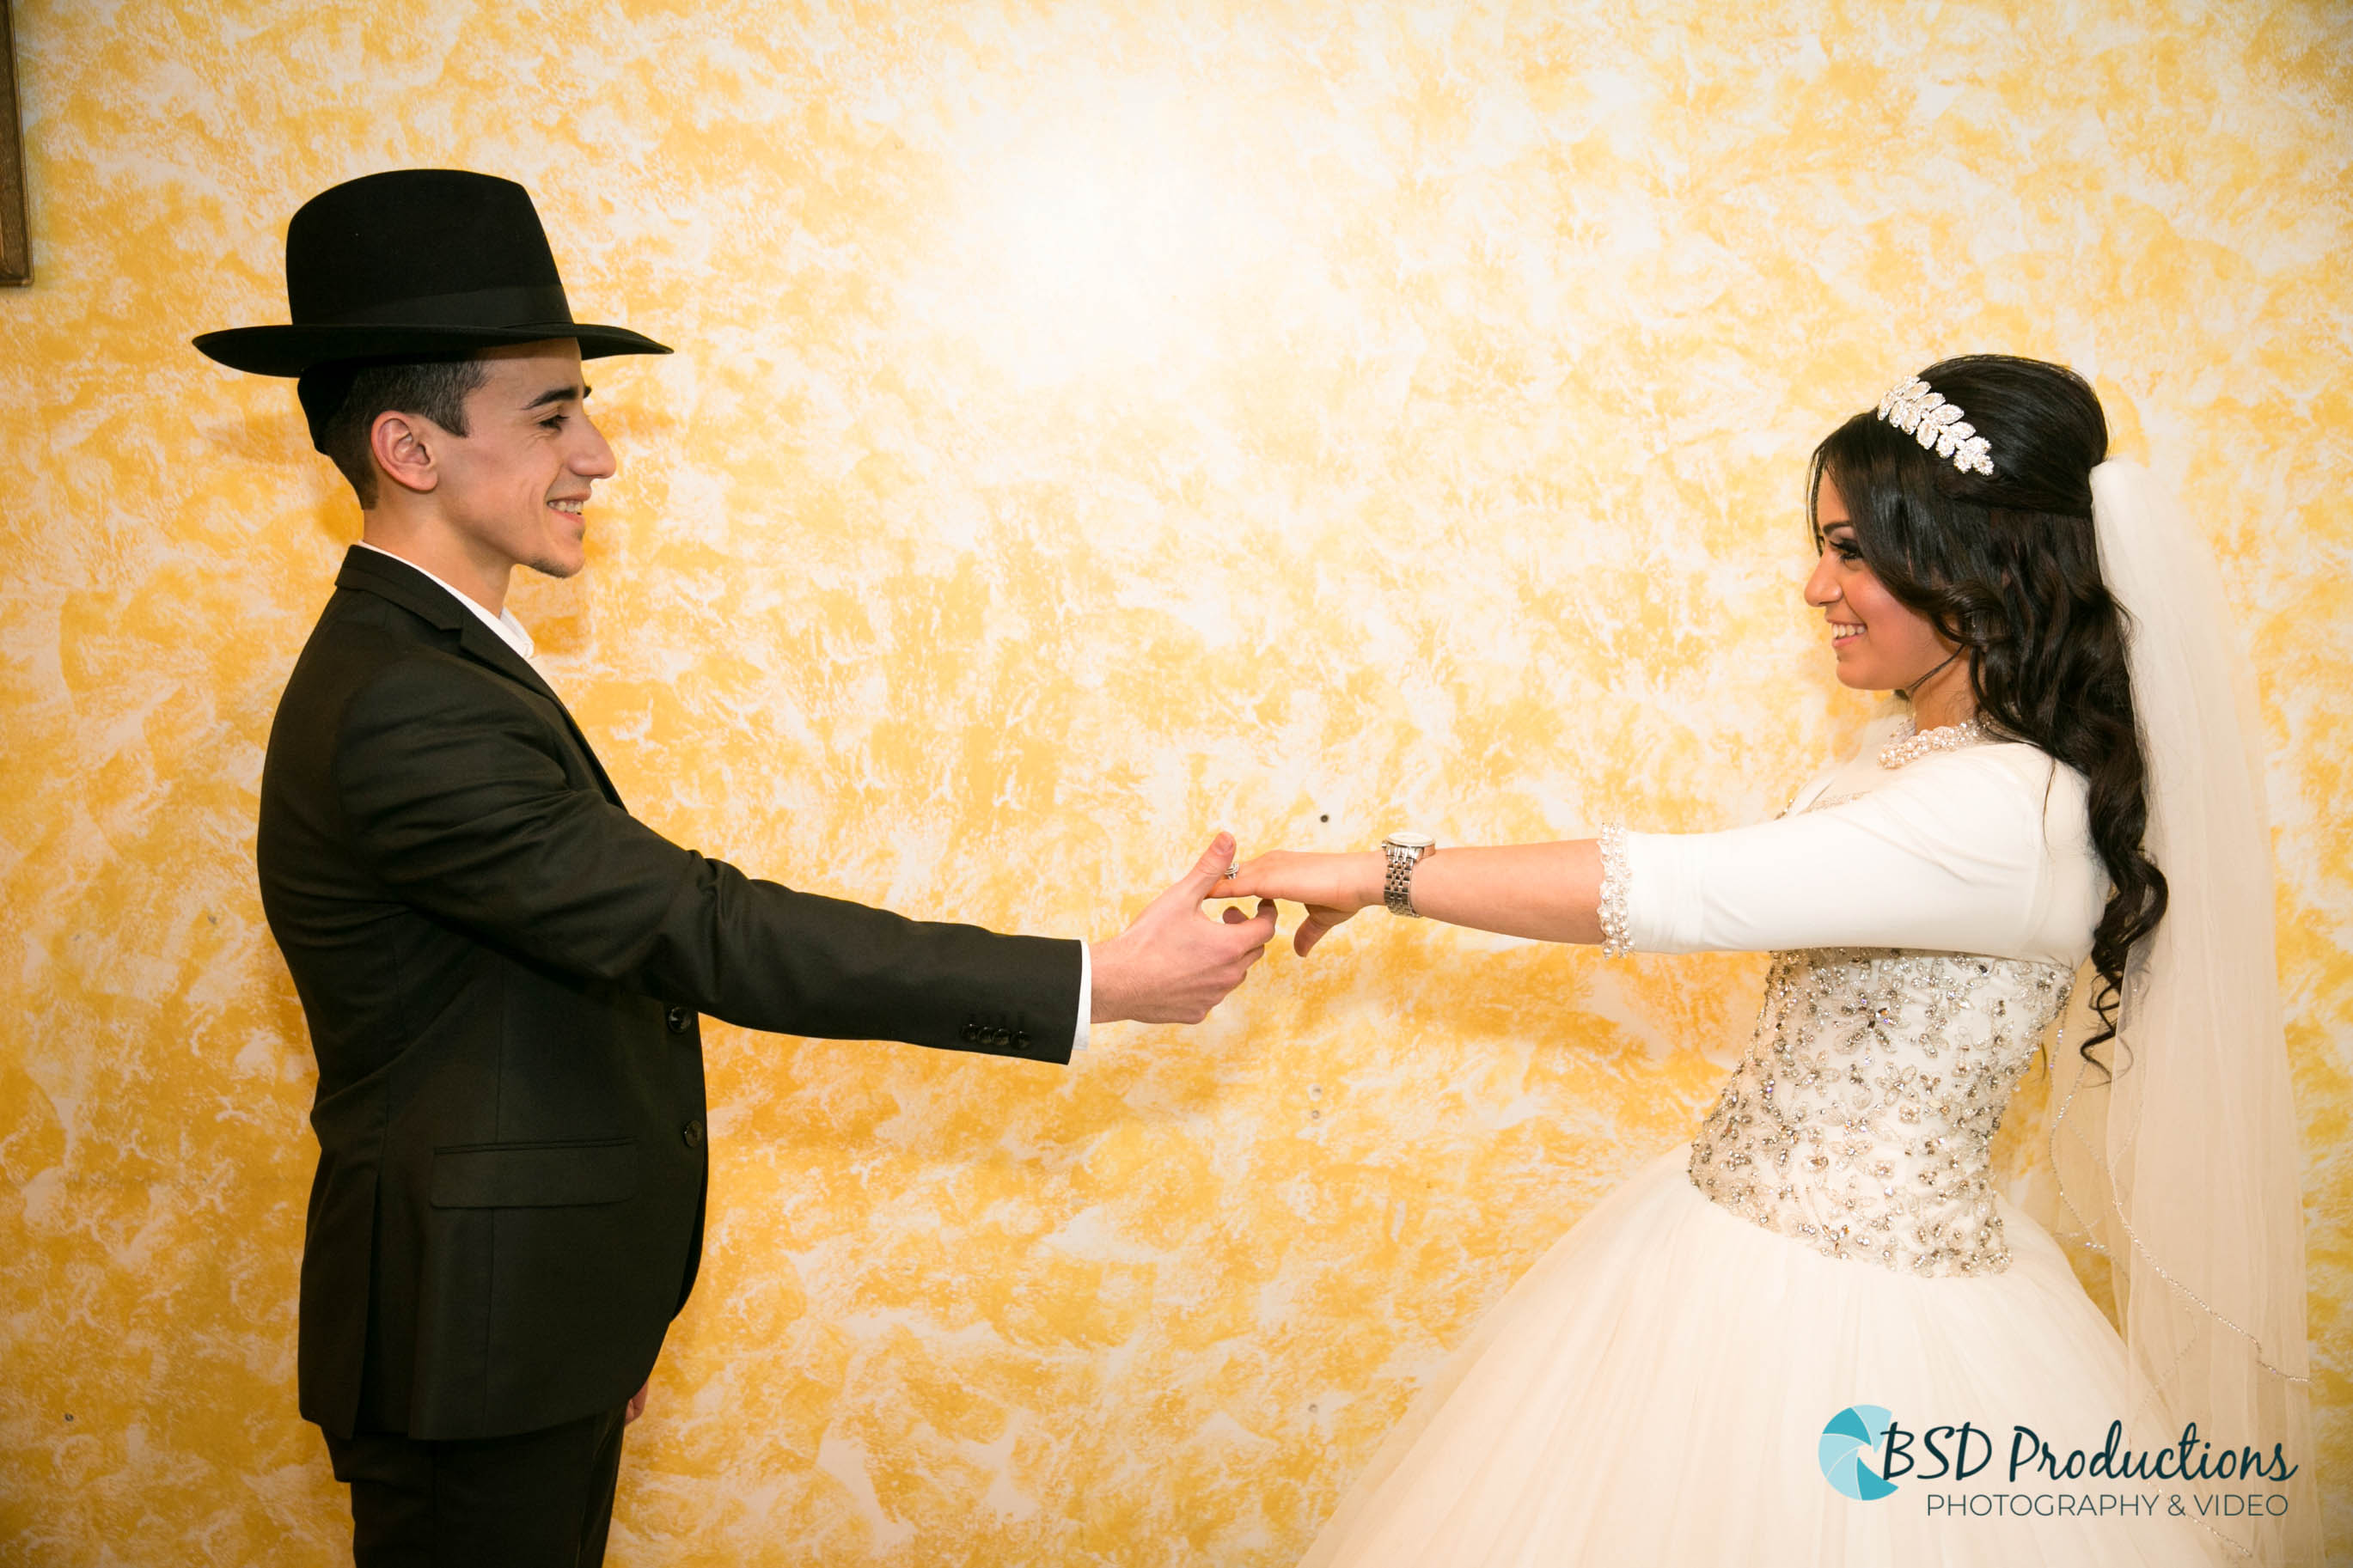 UH5A8656 Wedding – BSD Productions Photography